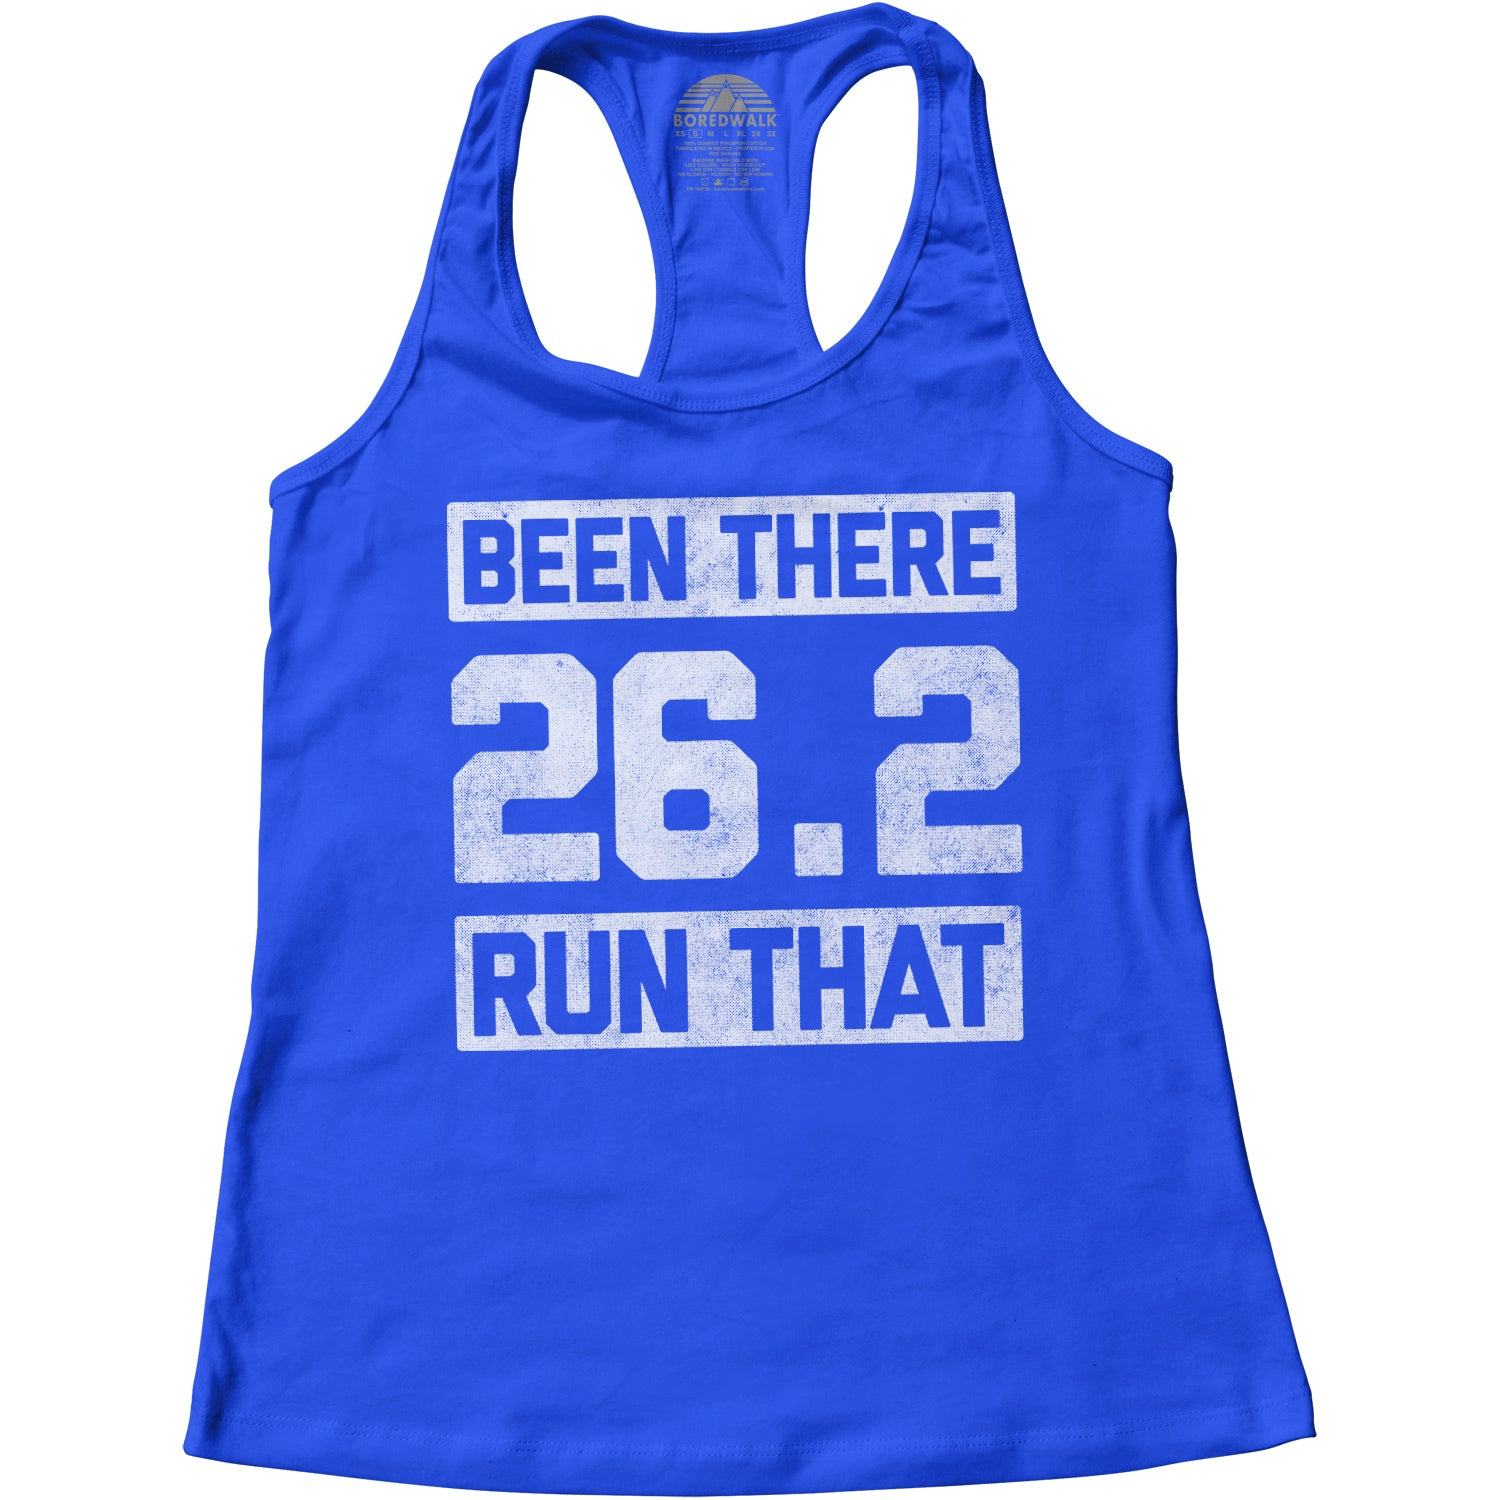 Women's 26.2 Been There Run That Racerback Tank Top